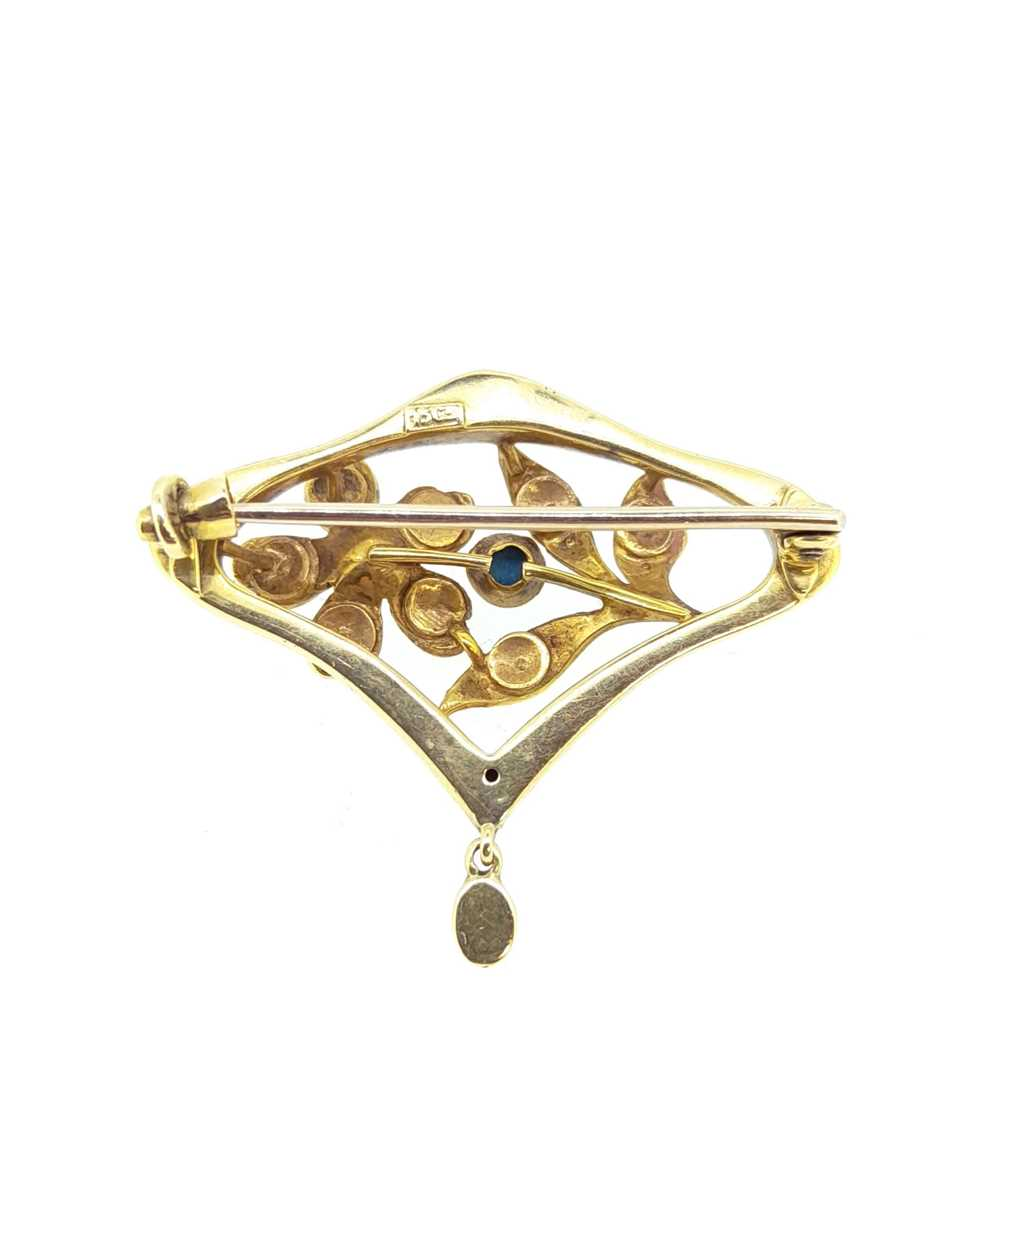 A pearl and diamond crescent bangle and a pearl and turquoise Art Nouveau brooch, - Image 4 of 6